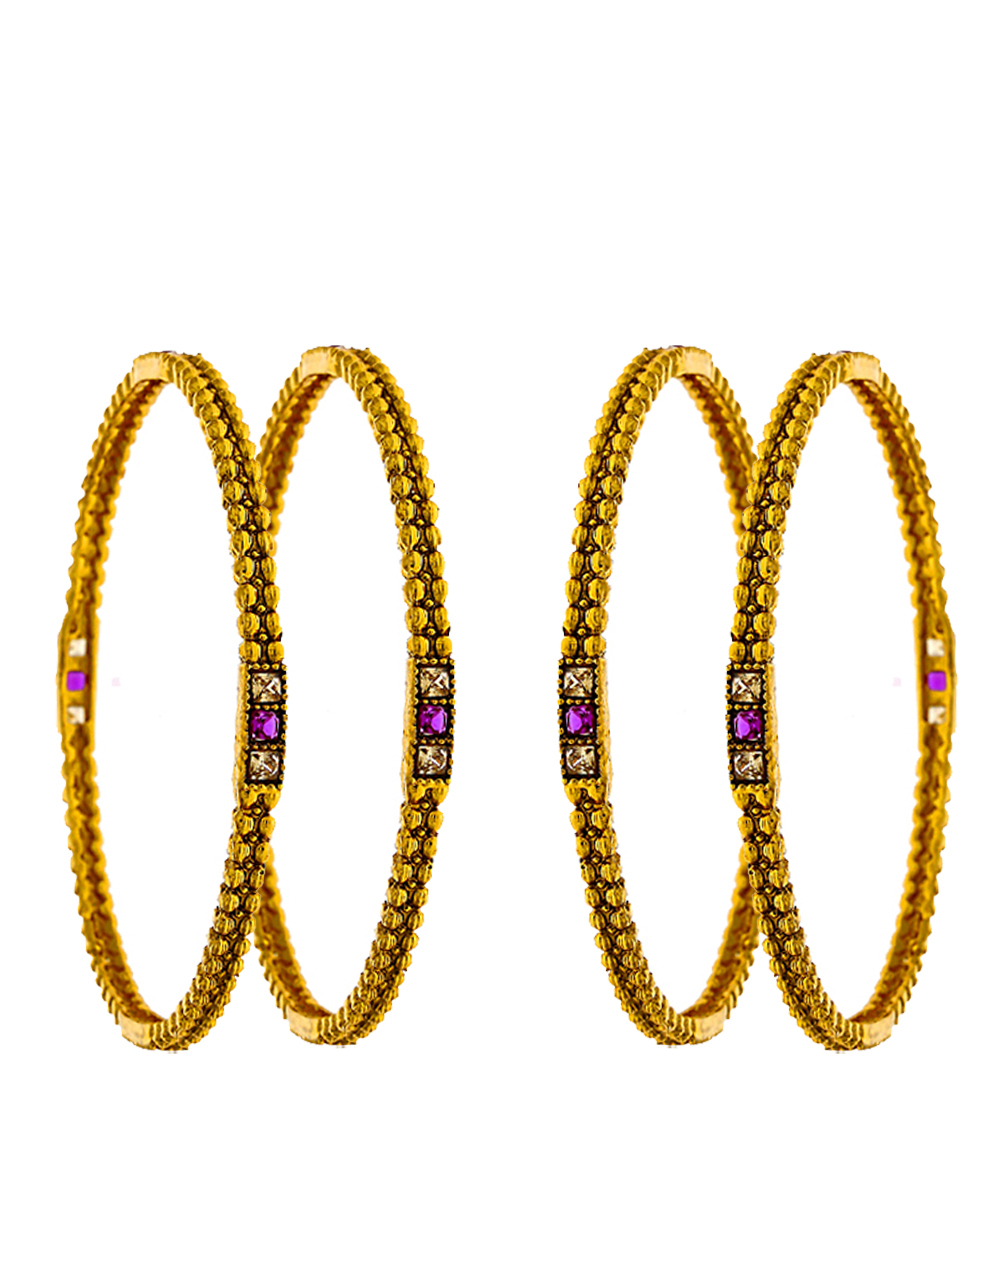 Slim Golden Bangles Studded With Pink LCT Stone For Women